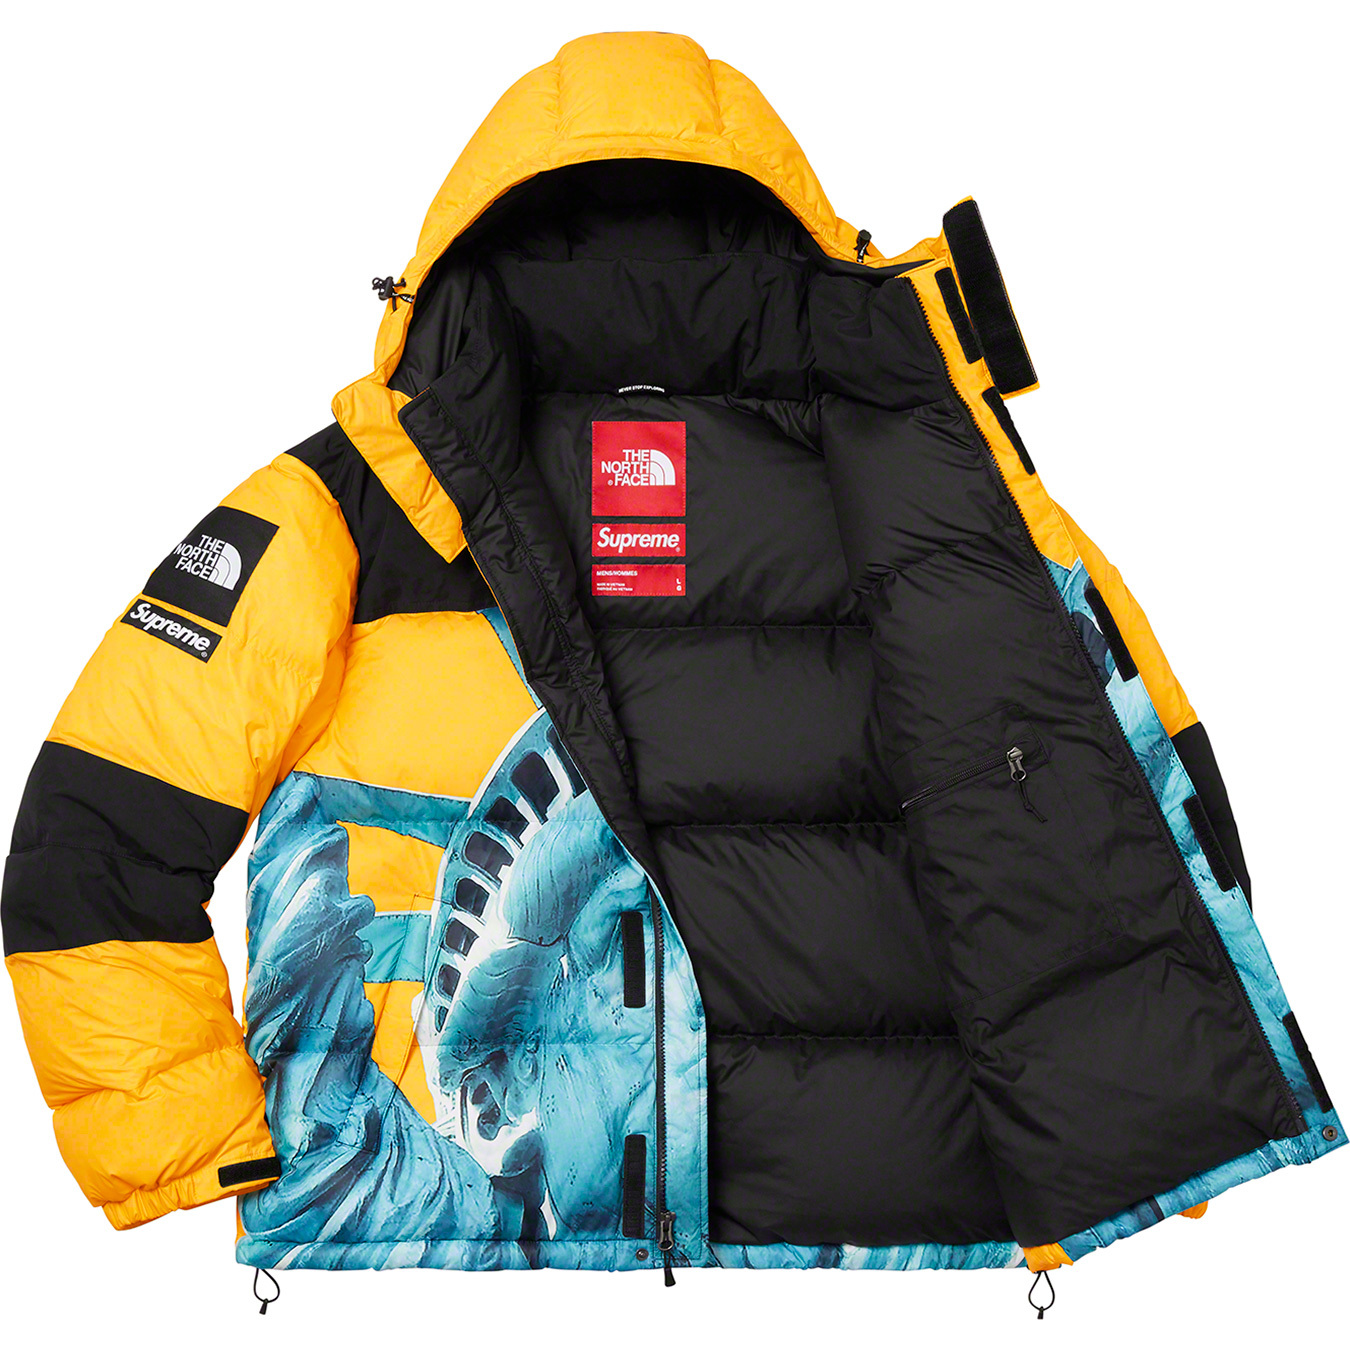 supreme-the-north-face-19aw-19fw-release-20191102-week10-statue-of-liberty-baltoro-jacket